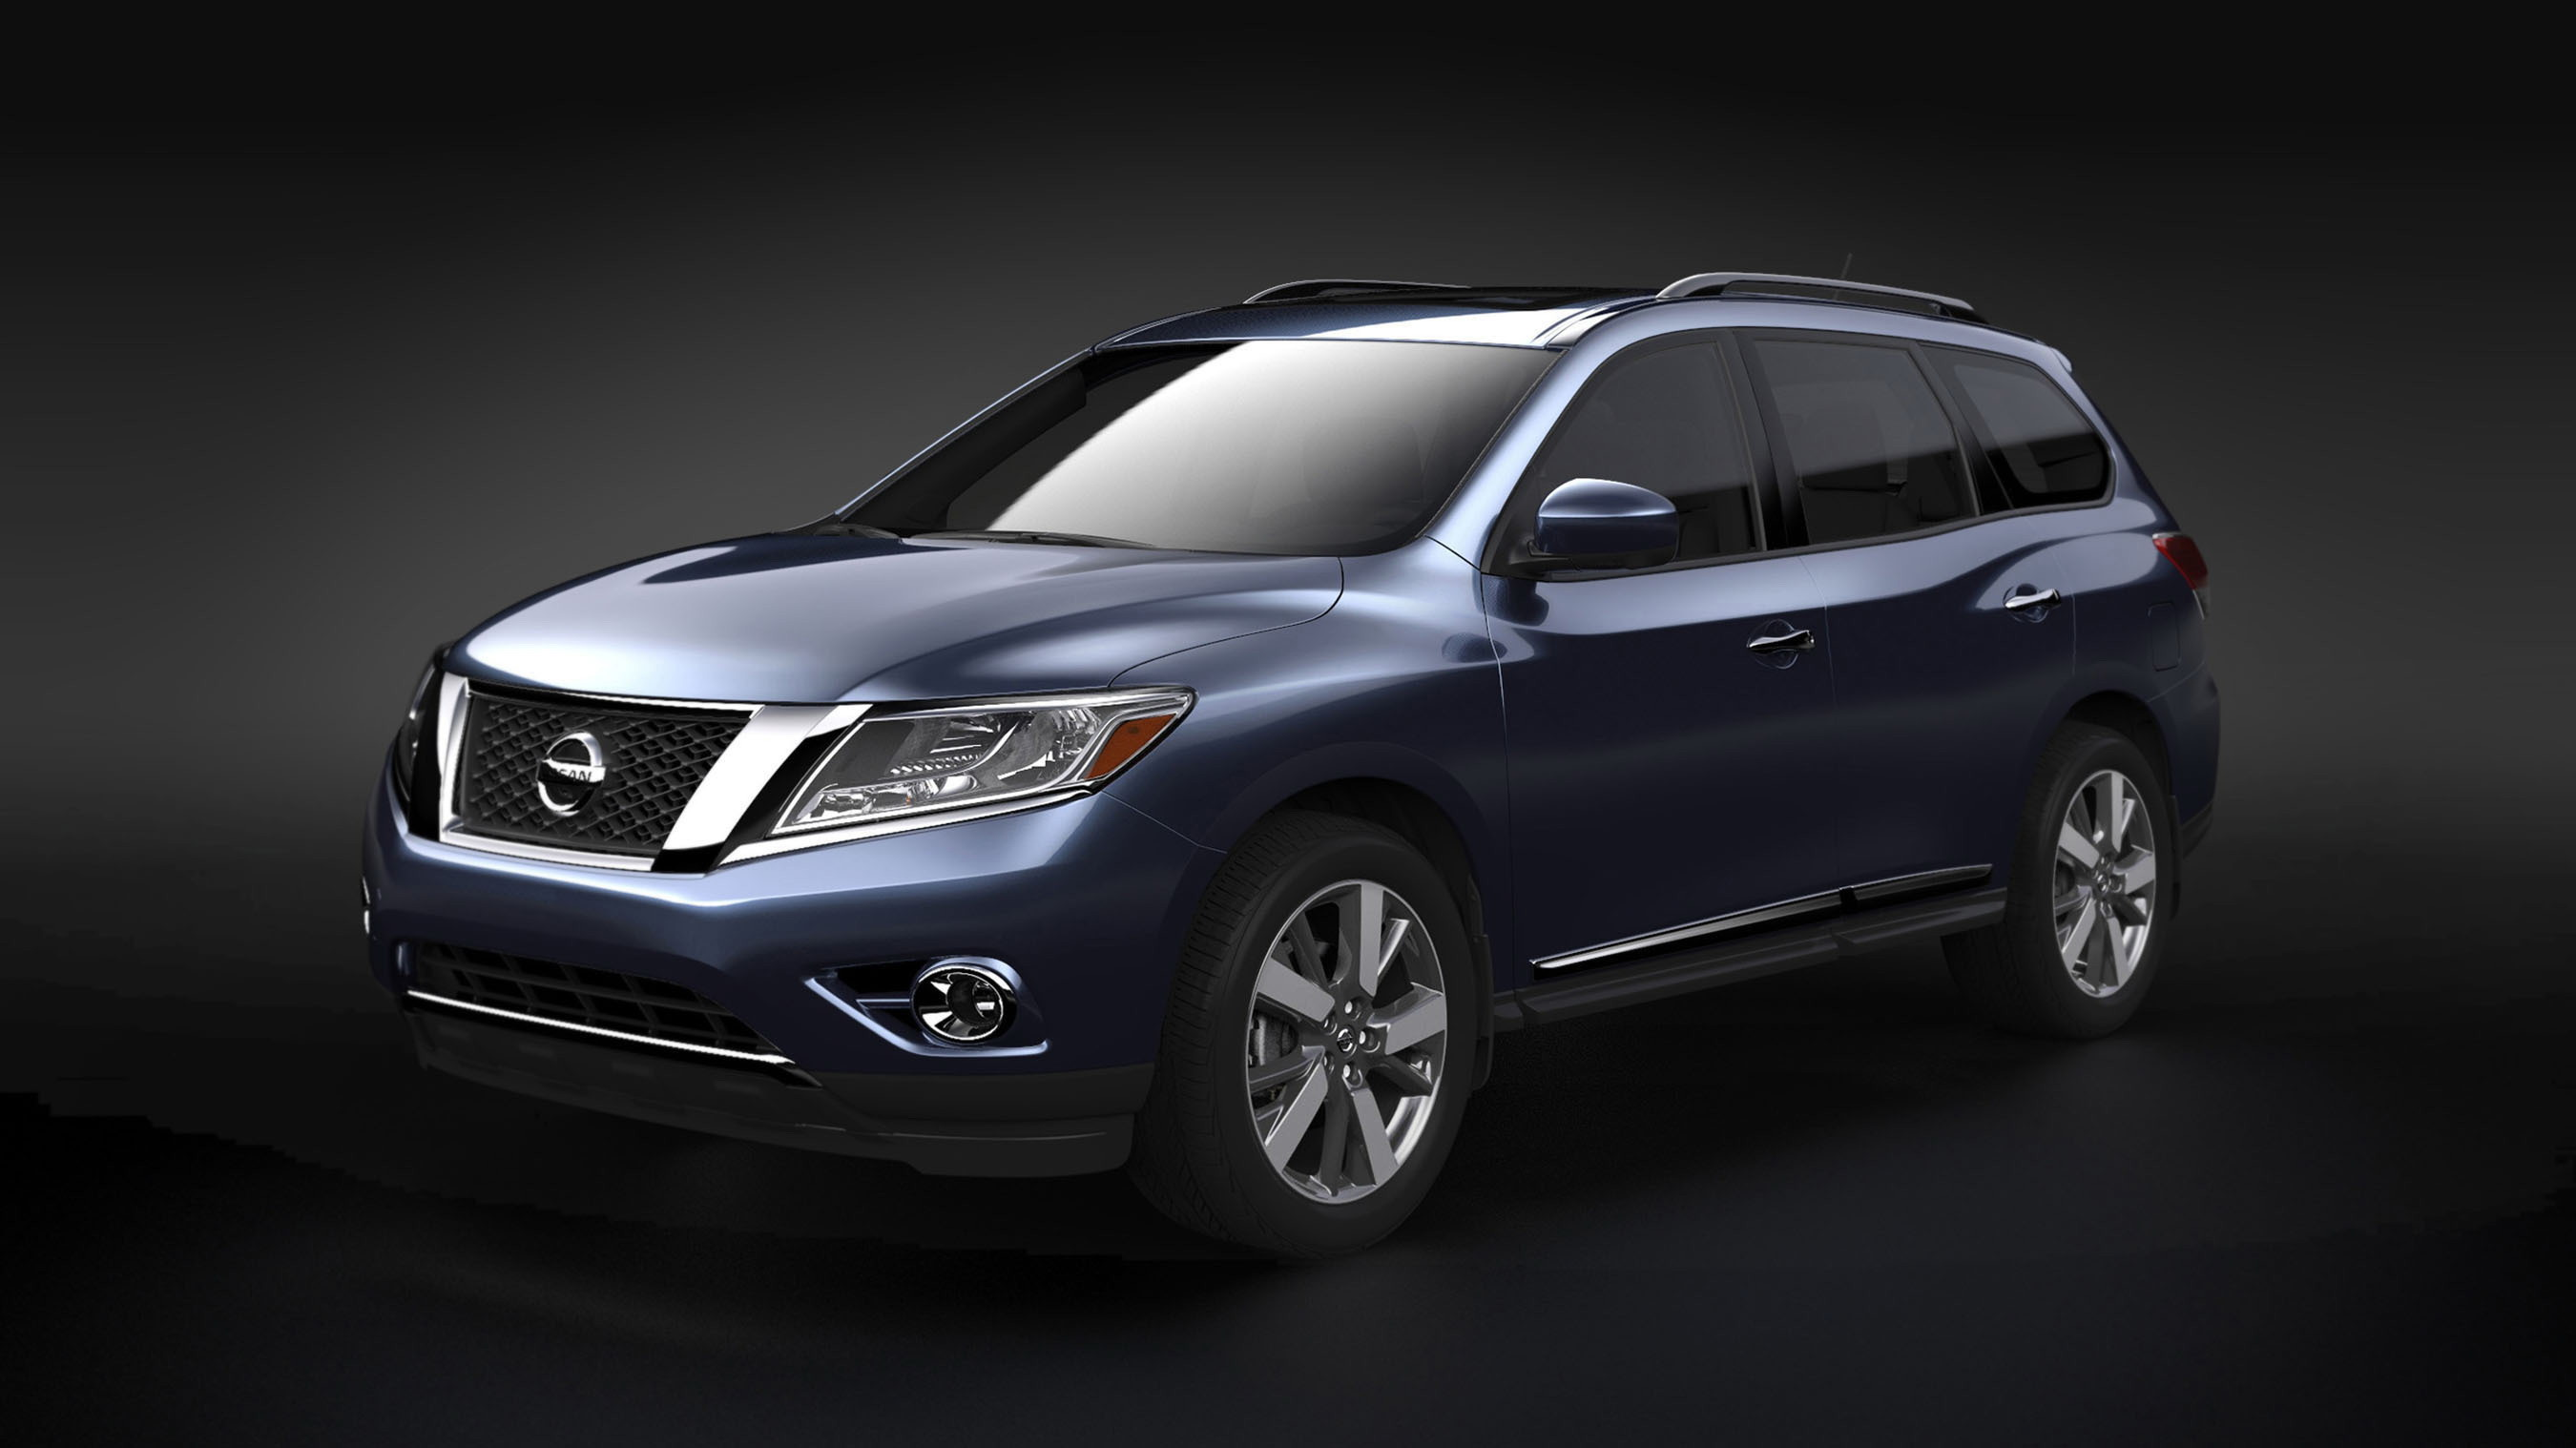 pathfinder nissan fresh decoration image and automotive gallery s beautiful photograph online latest